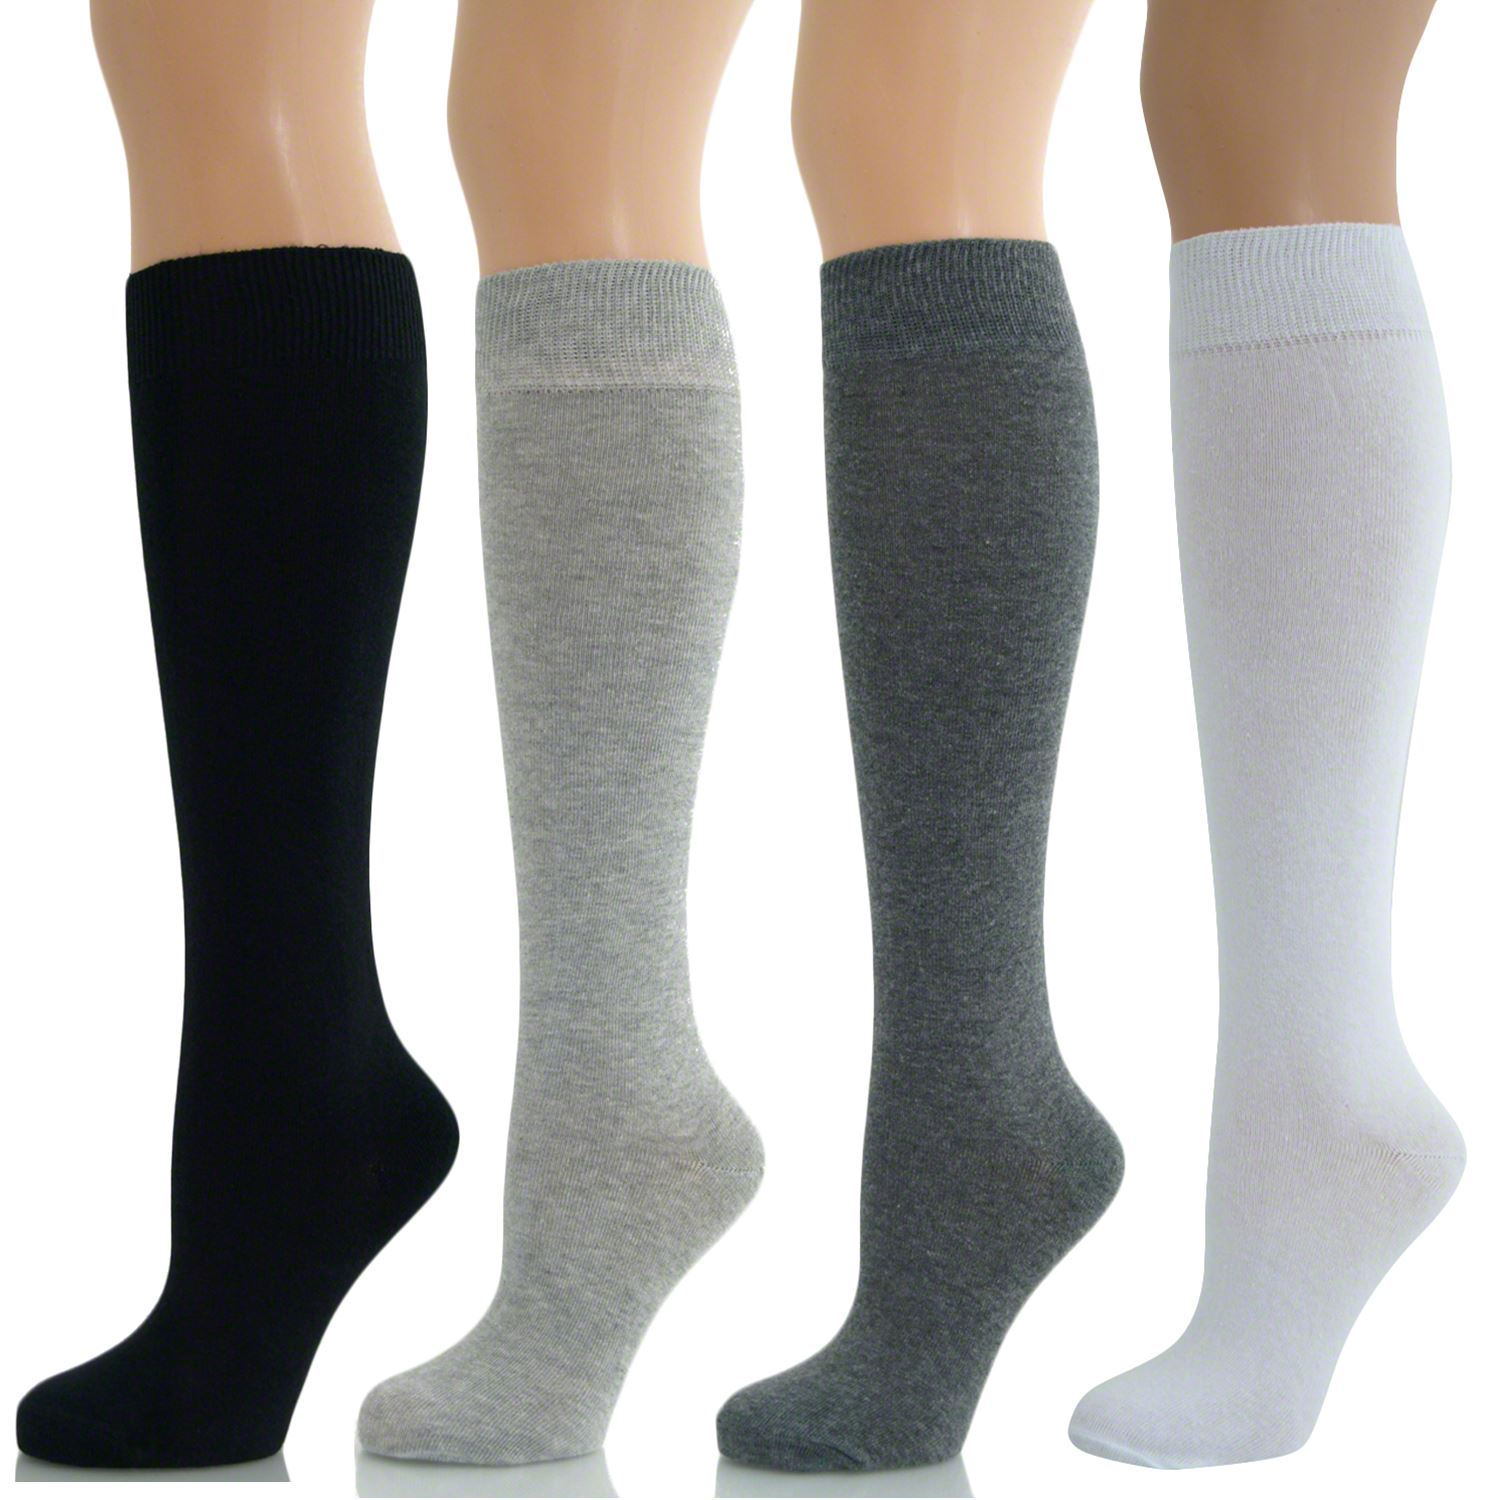 Ladies Long Socks. invalid category id. Ladies Long Socks. Showing 30 of 30 results that match your query. Product - Absolute Stores Ladies Holiday Socks Pack - 8 Pairs. Product Image. Price $ Product Title. Absolute Stores Ladies Holiday Socks Pack - 8 Pairs. Add To Cart. There is a problem adding to cart. Please try again.